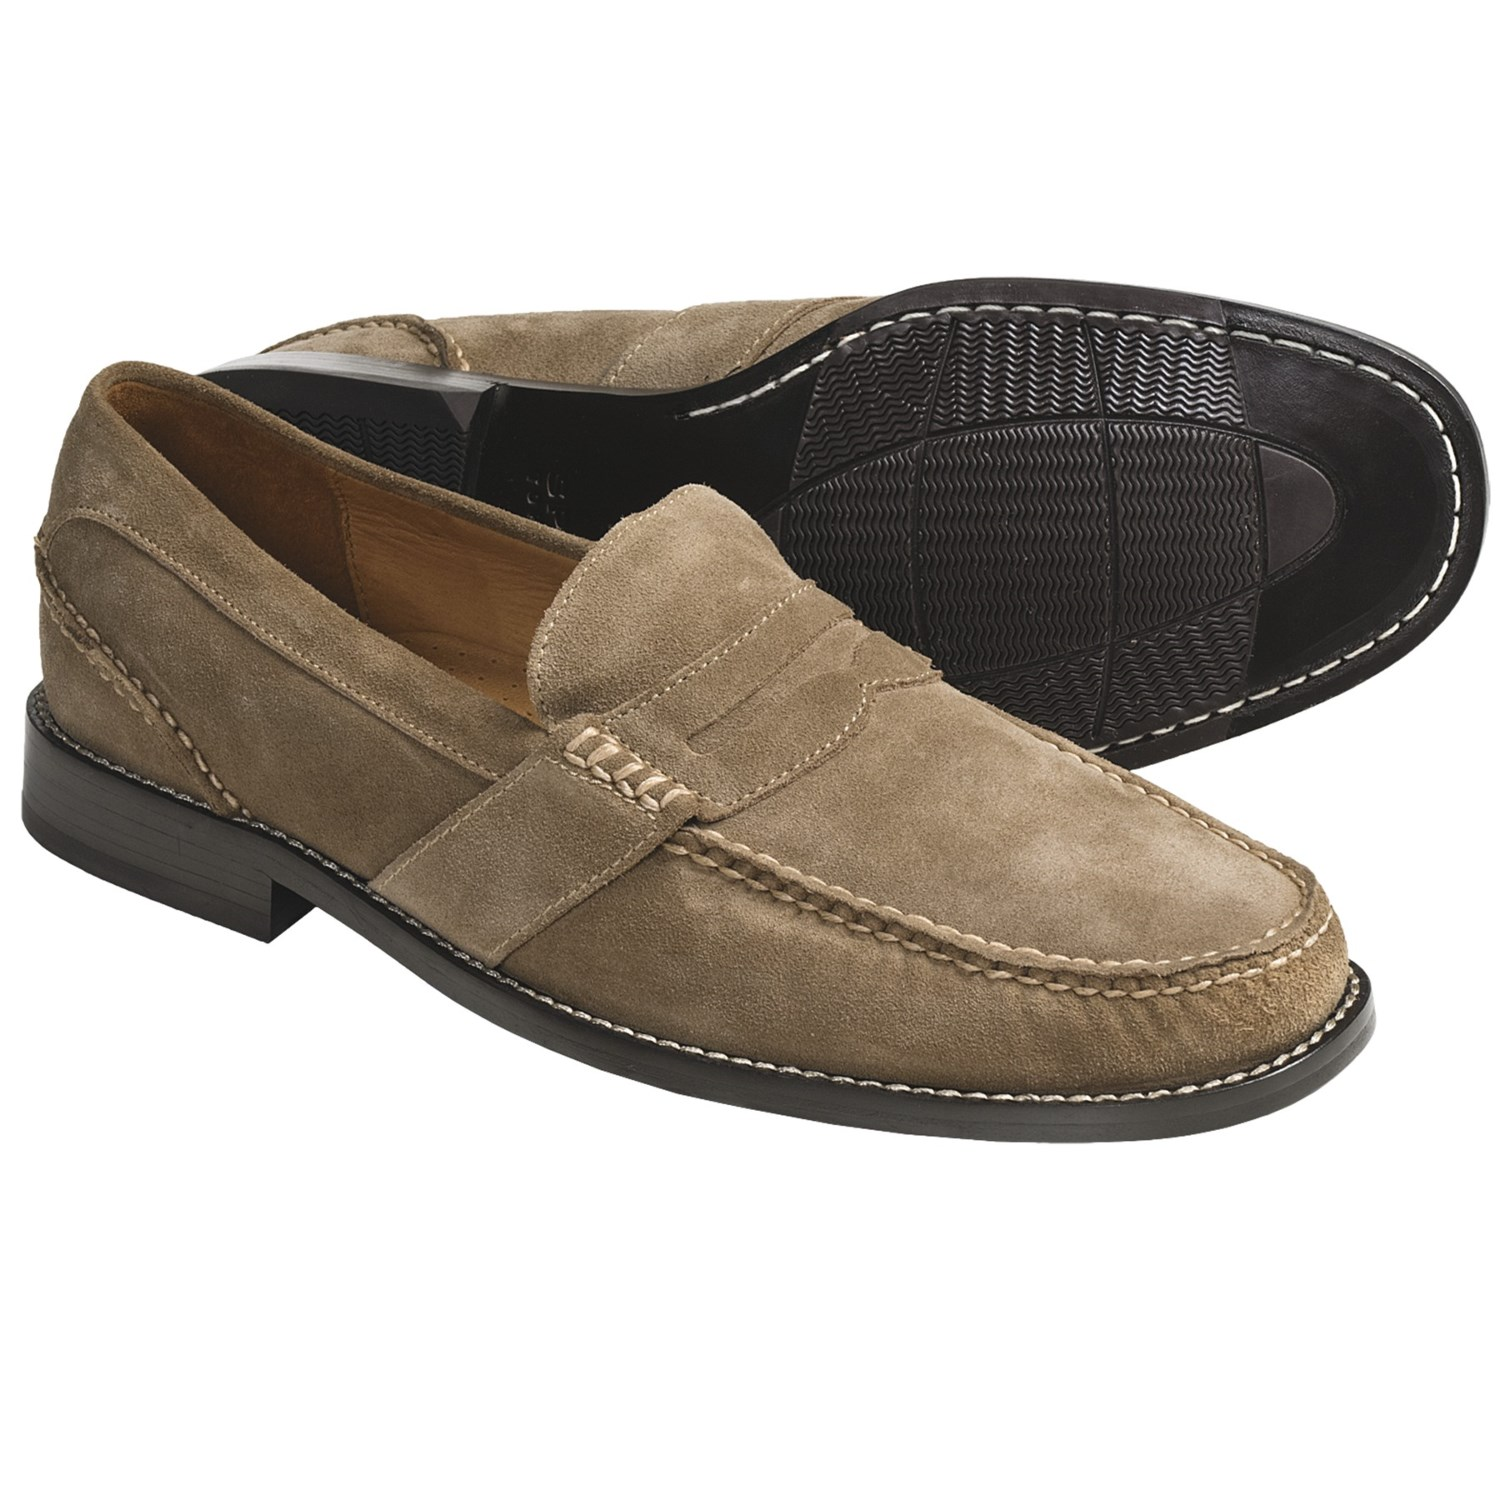 Sperry Top Sider Leather Penny Loafer Shoes Gold Cup Collection